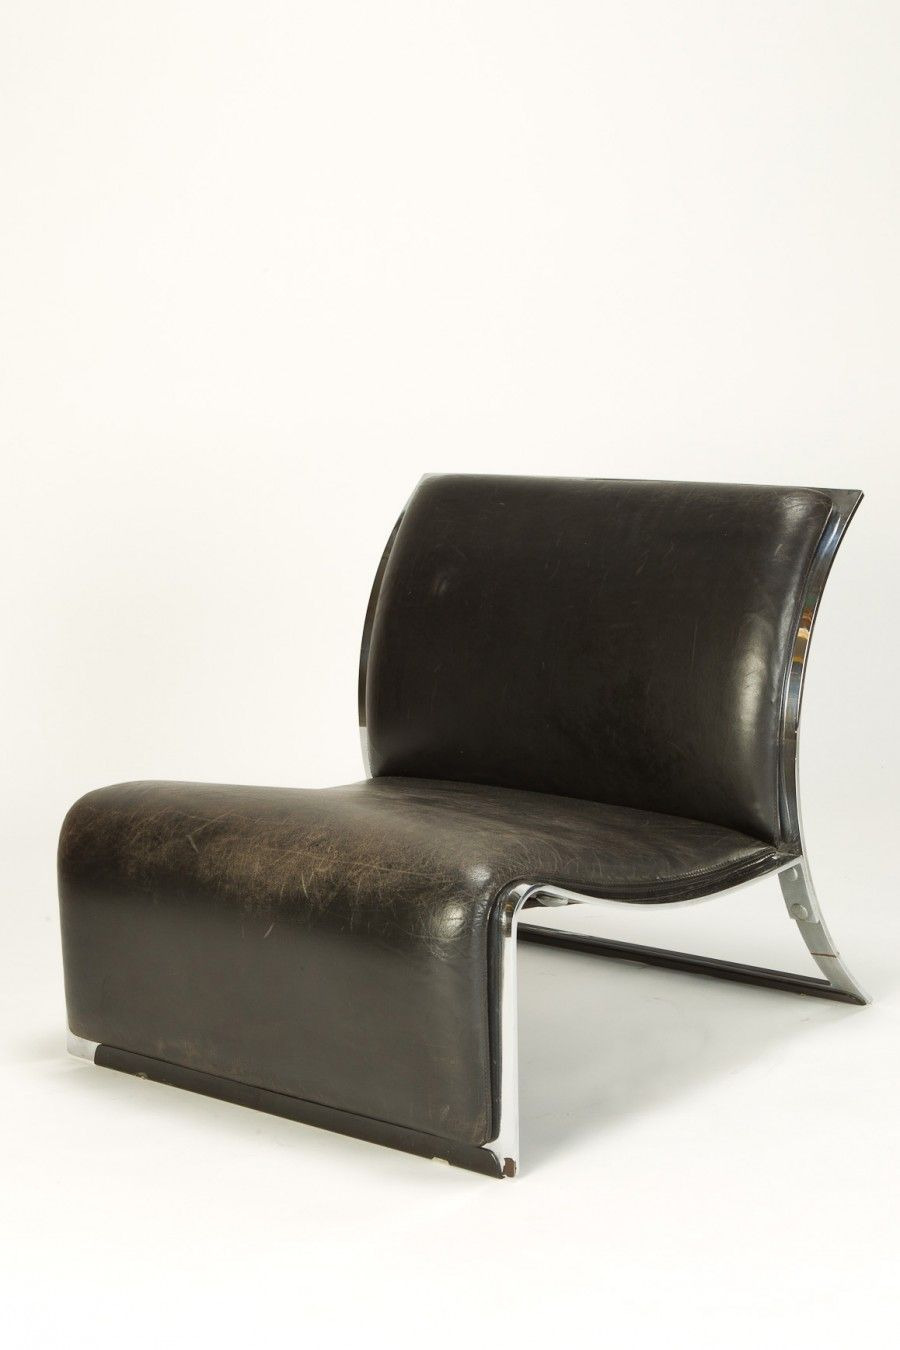 Saporiti Italia Designer Sessel Vittorio Introini Leather And Chromed Metal Lounge Chair For